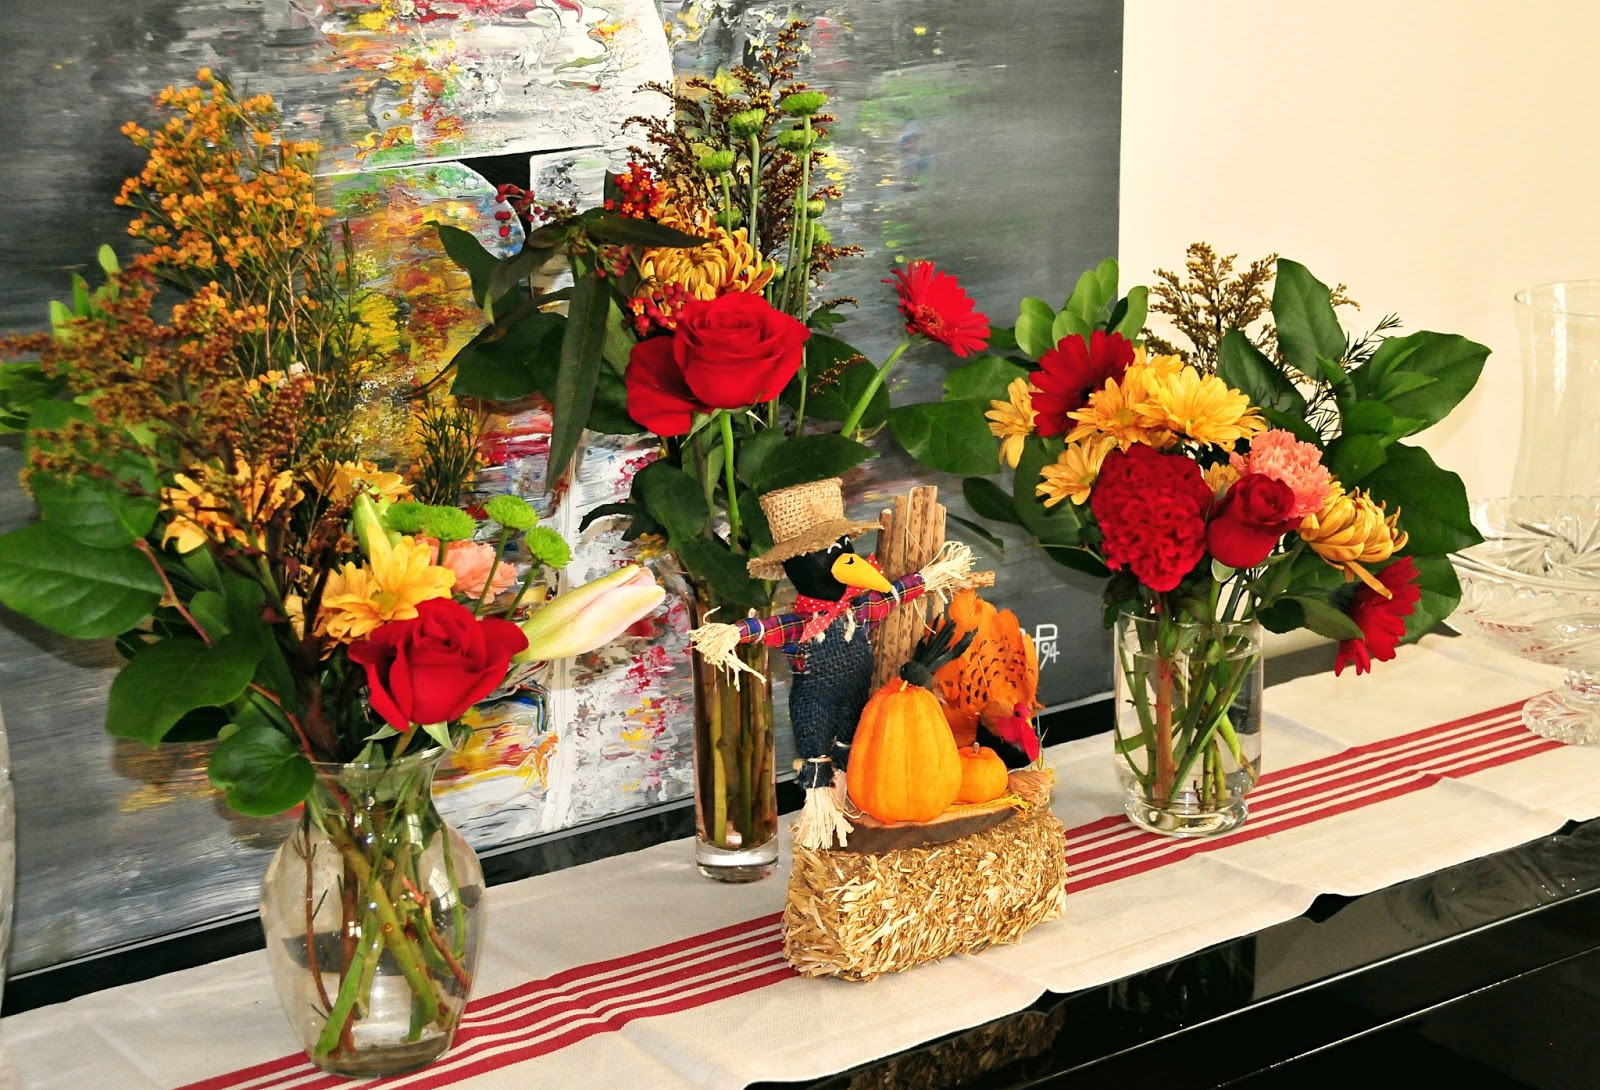 thanksgiving table setting decor ideas flowers fall yellow red